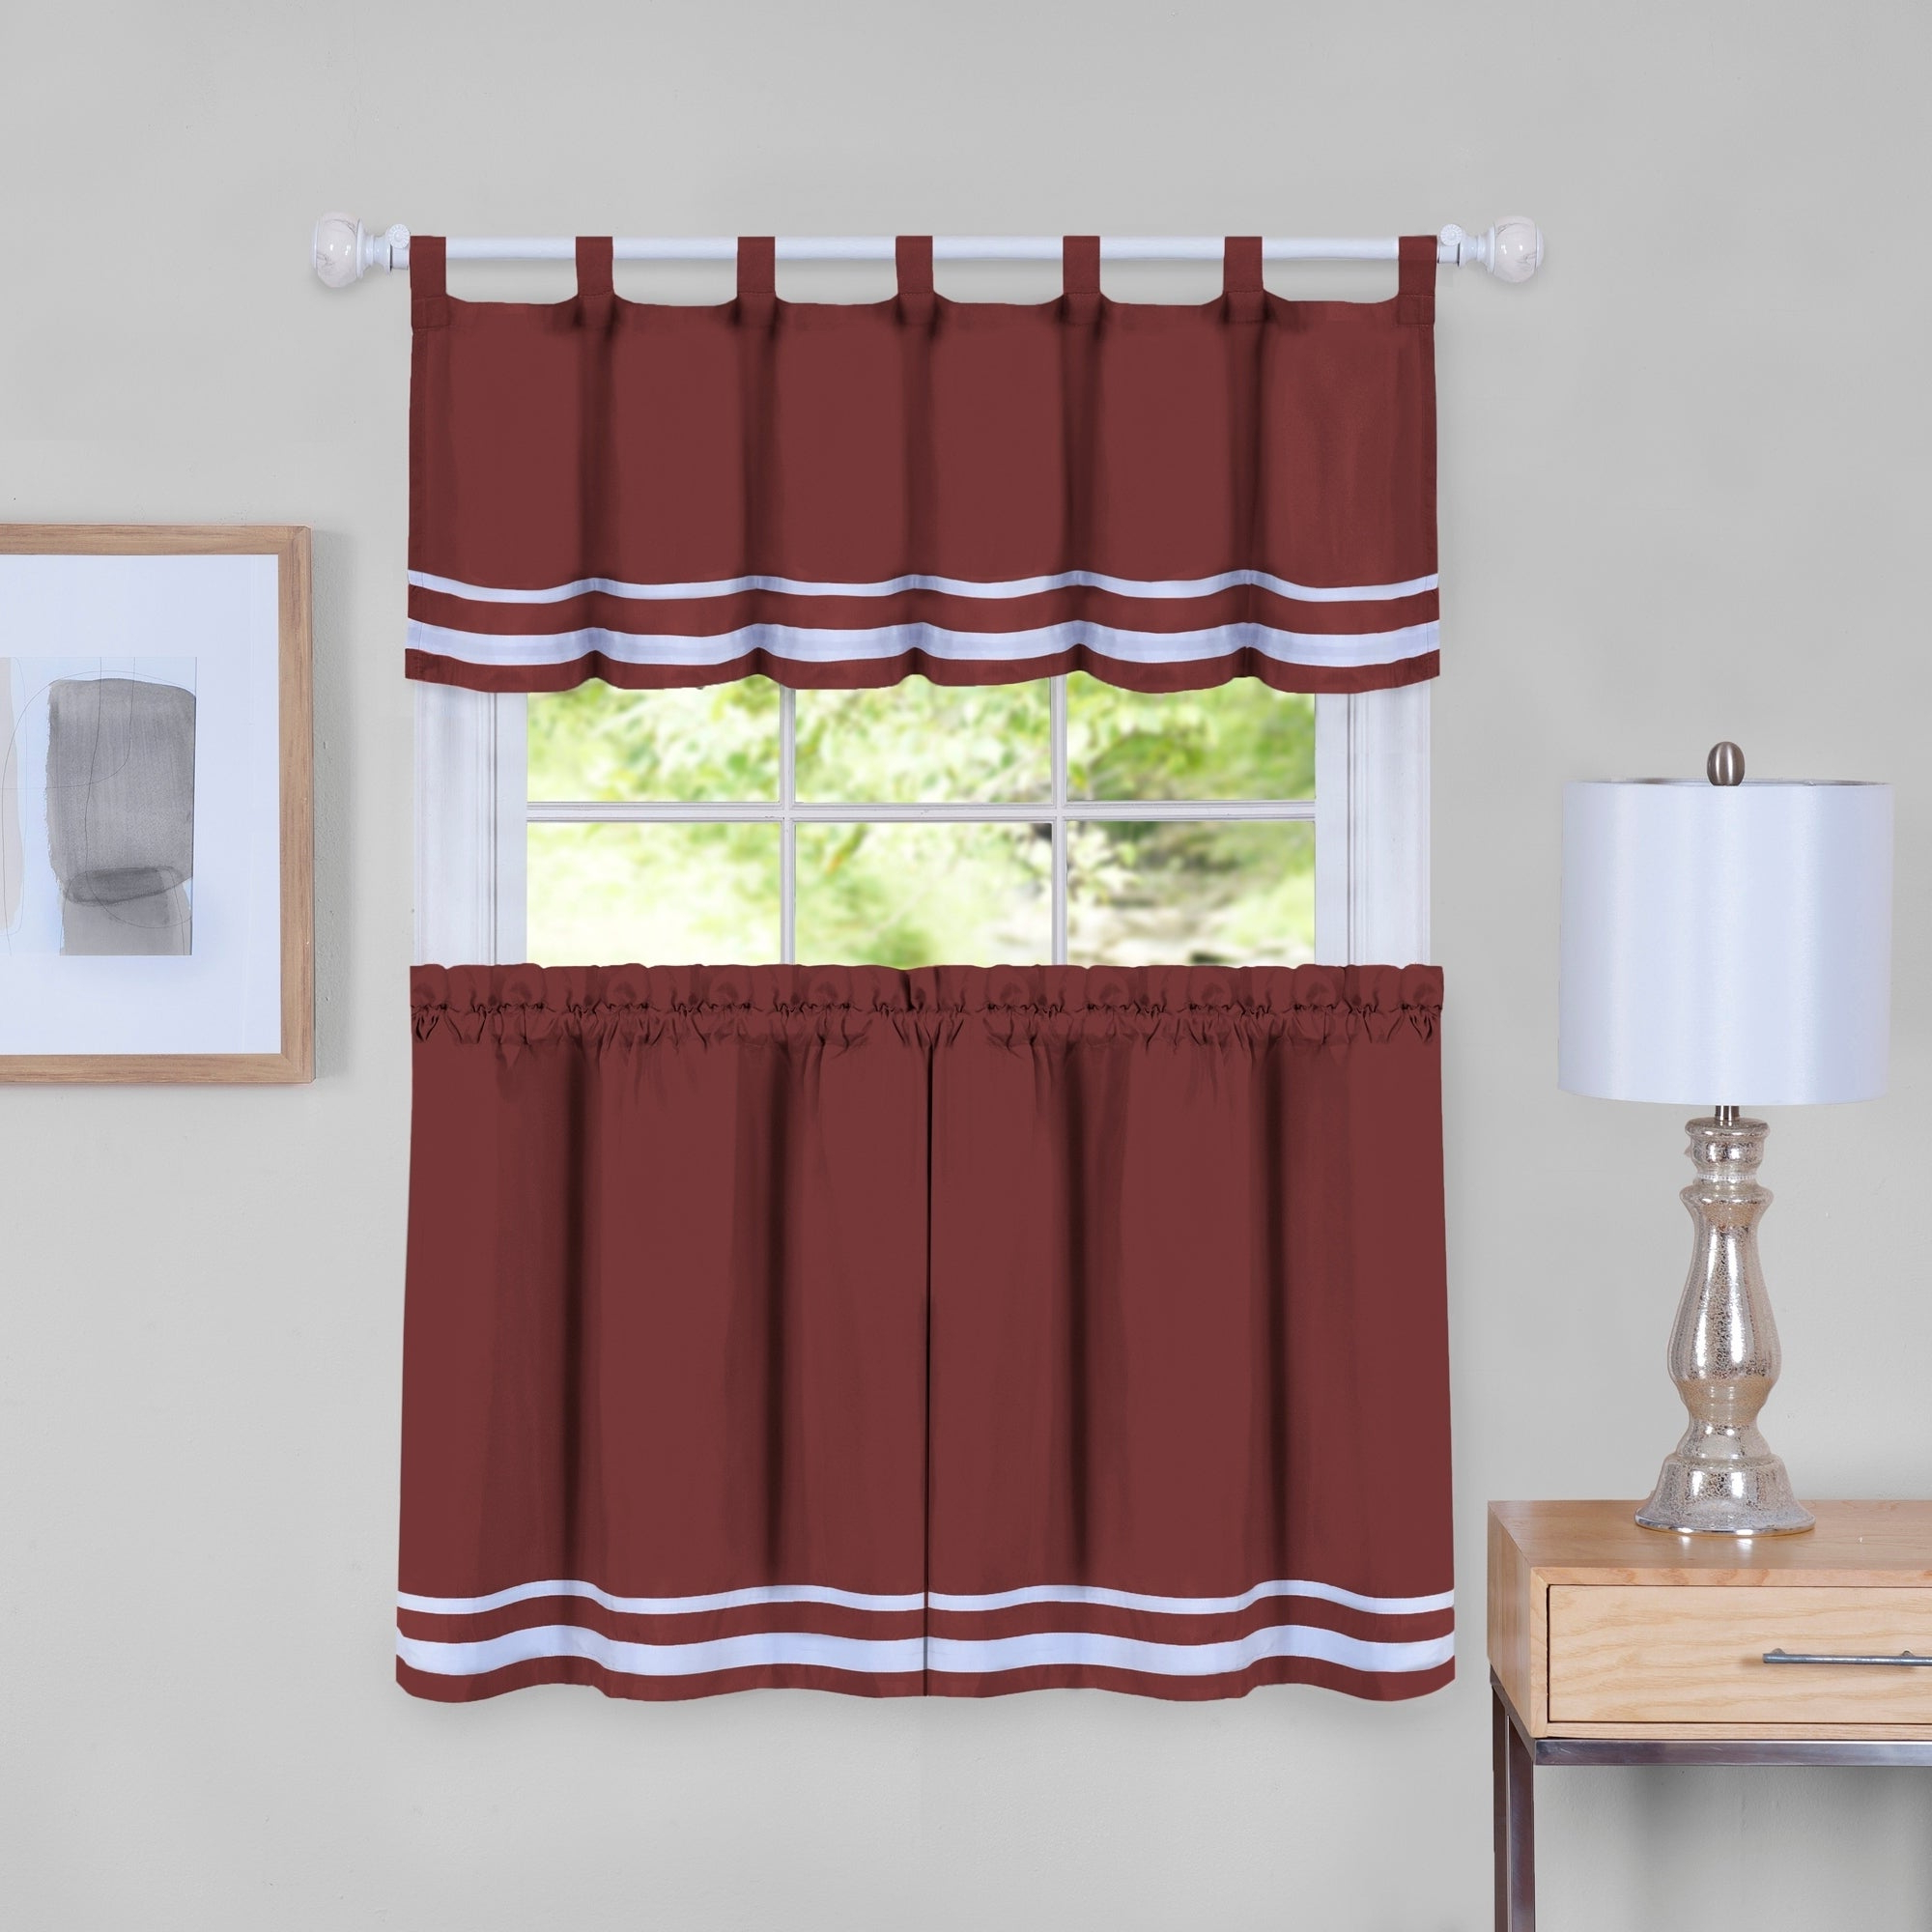 Fashionable Dakota Window Curtain Tier Pair And Valance Set Pertaining To Window Curtain Tier And Valance Sets (View 9 of 20)